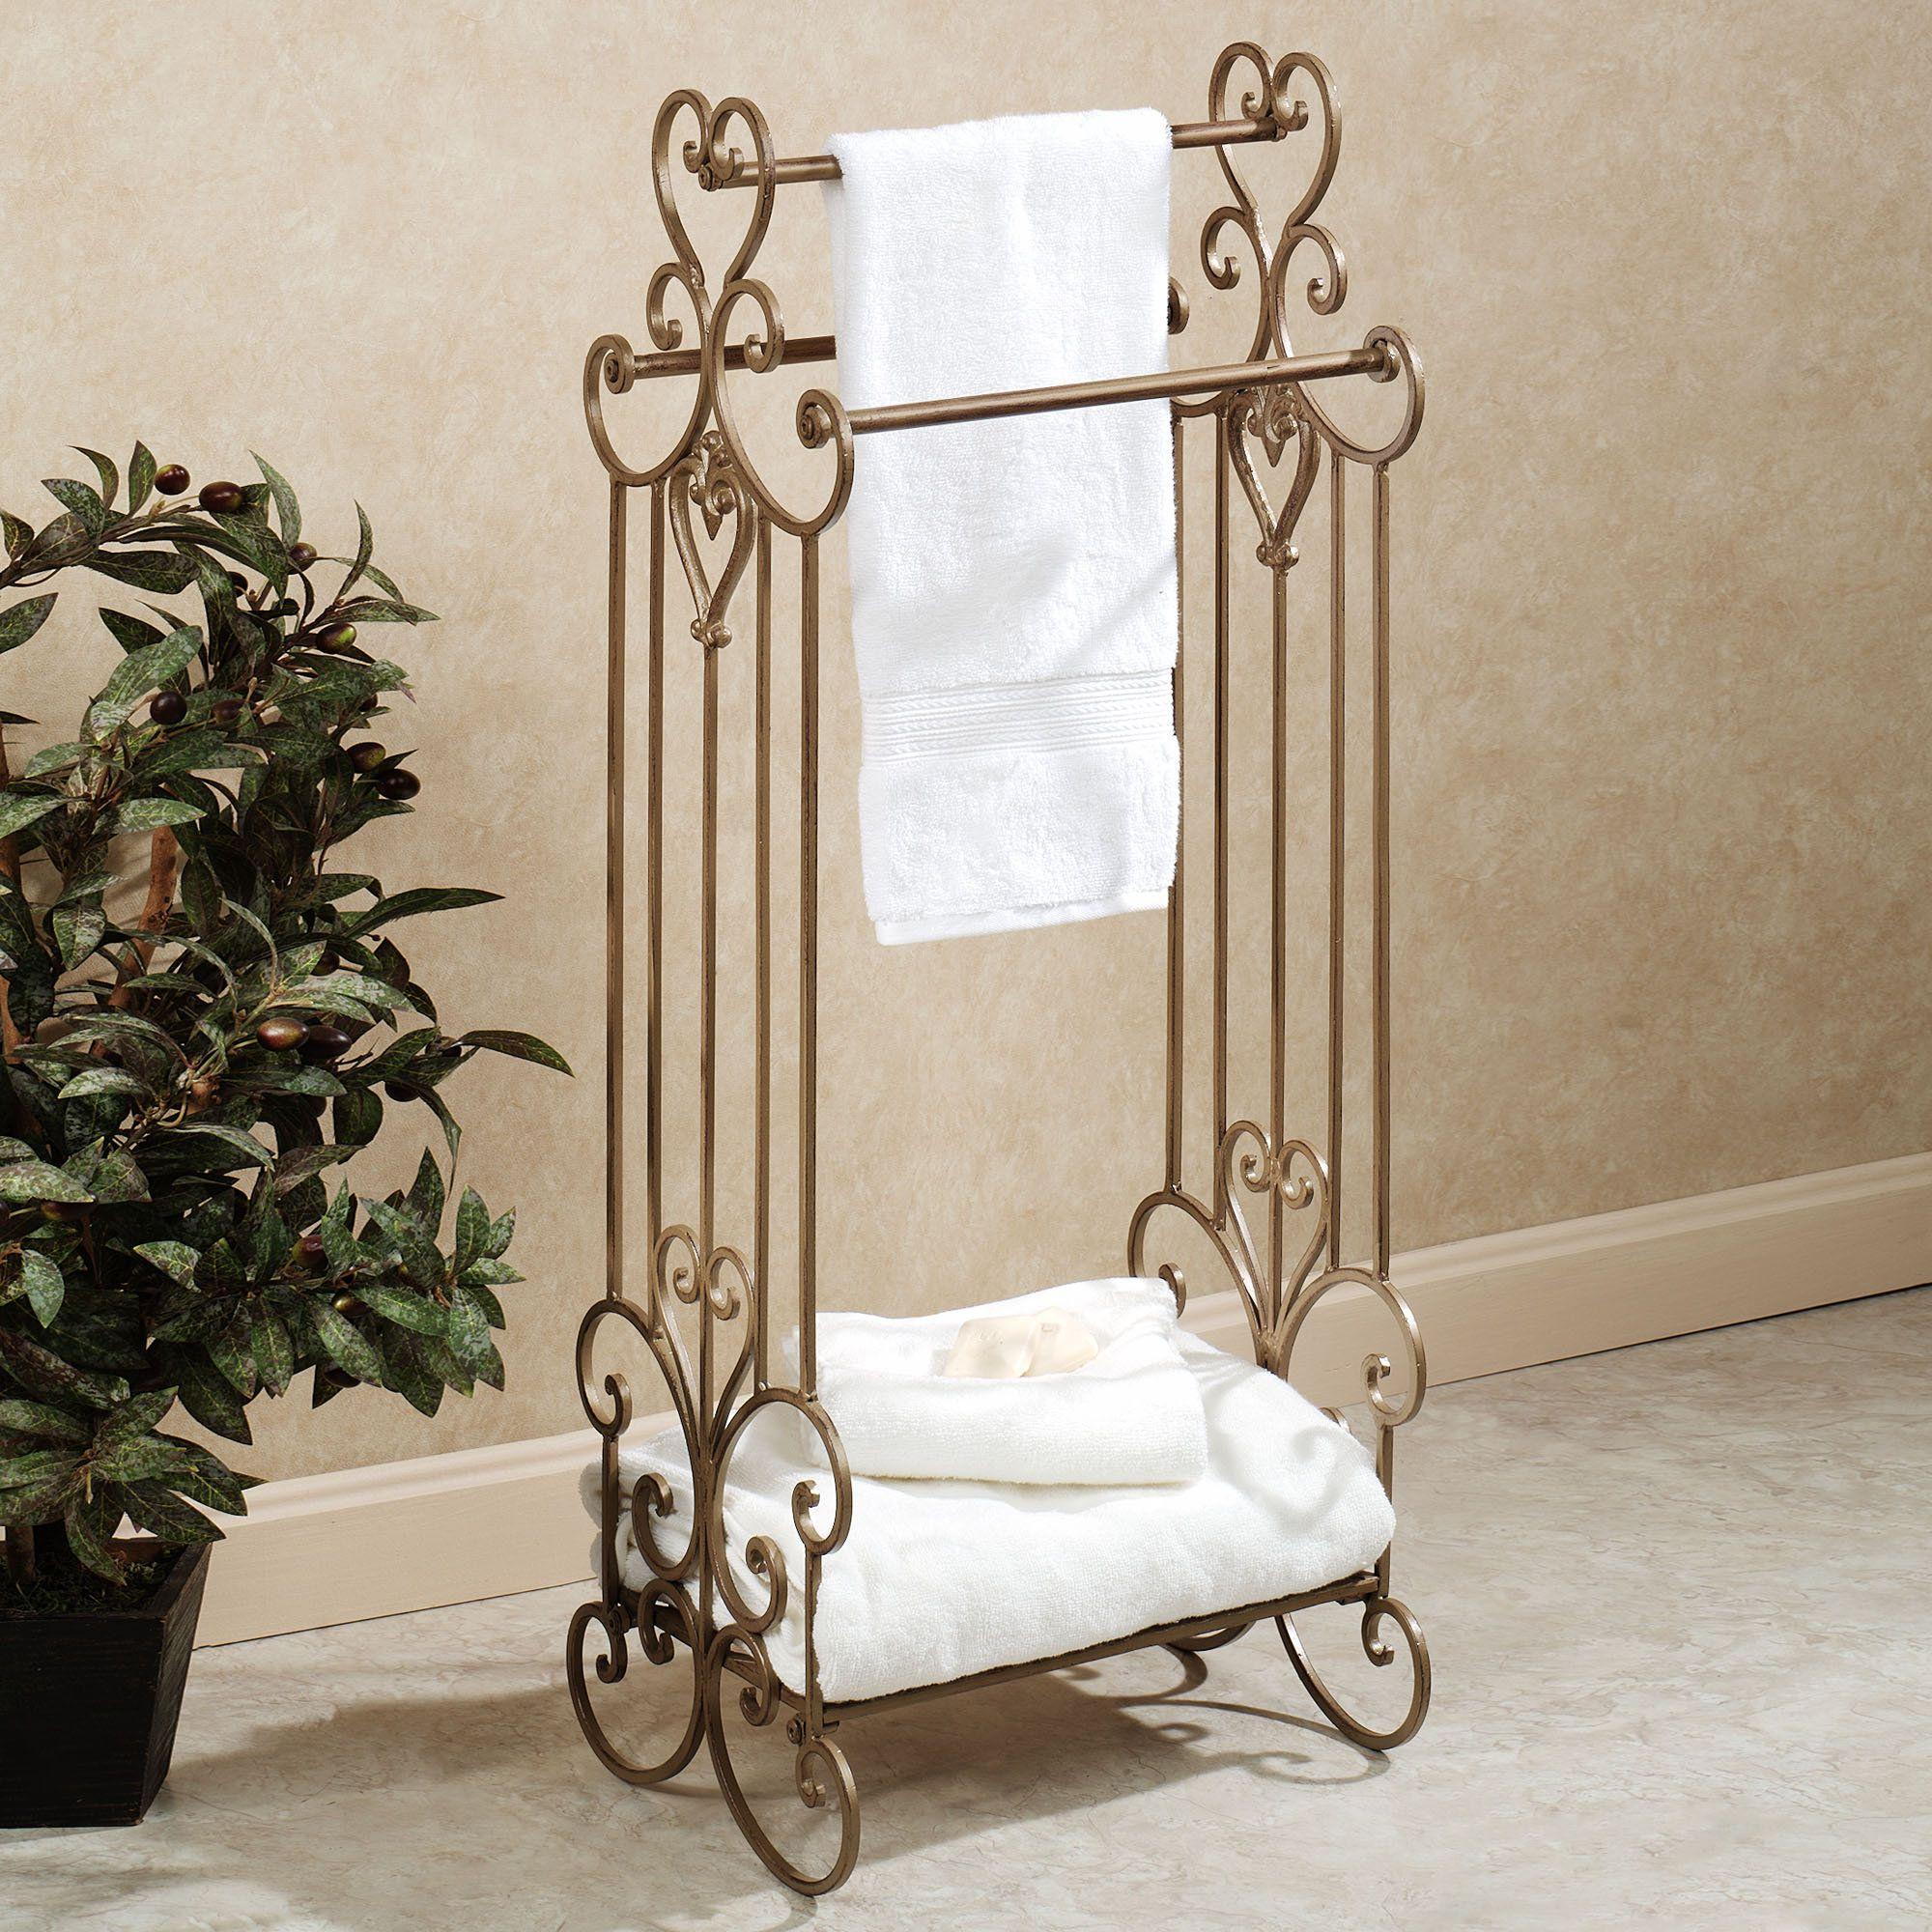 Aldabella Satin Gold Bath Towel Rack Stand Touch Of Cl Was 125 Now 89 99